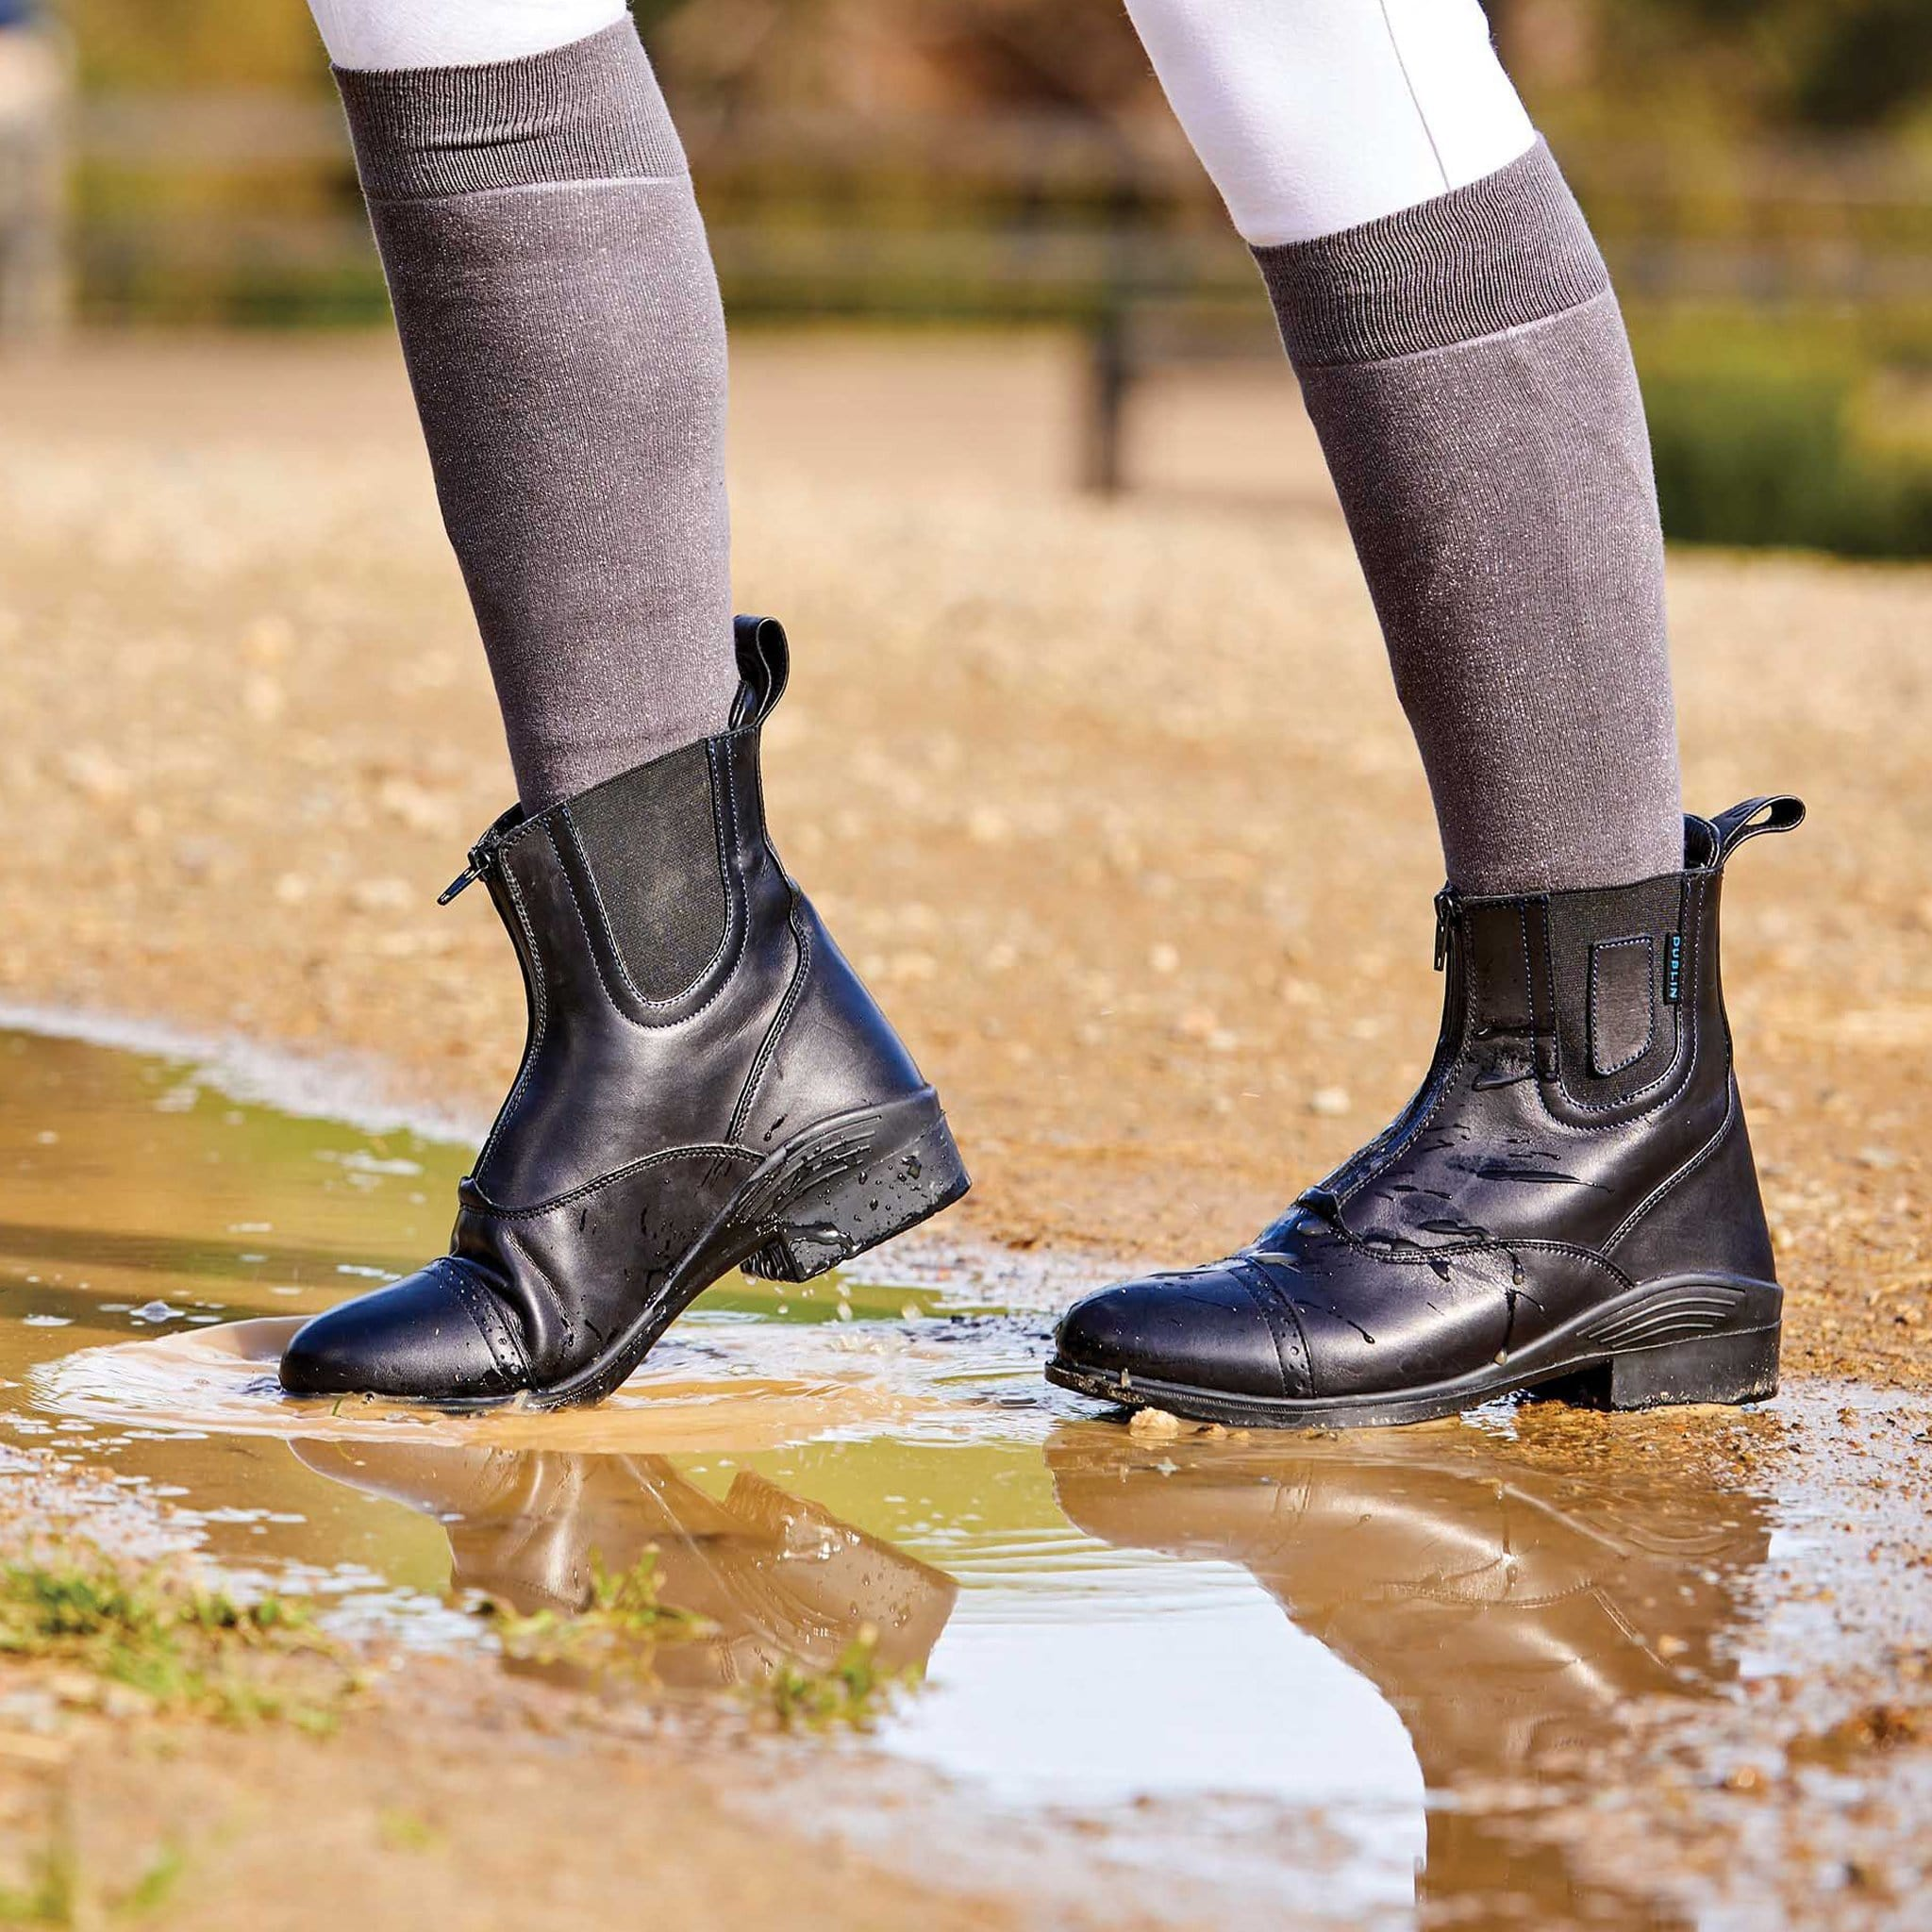 Dublin Elevation Waterproof Zip Front Paddock Boots 1001731003 Black On Model In Puddle